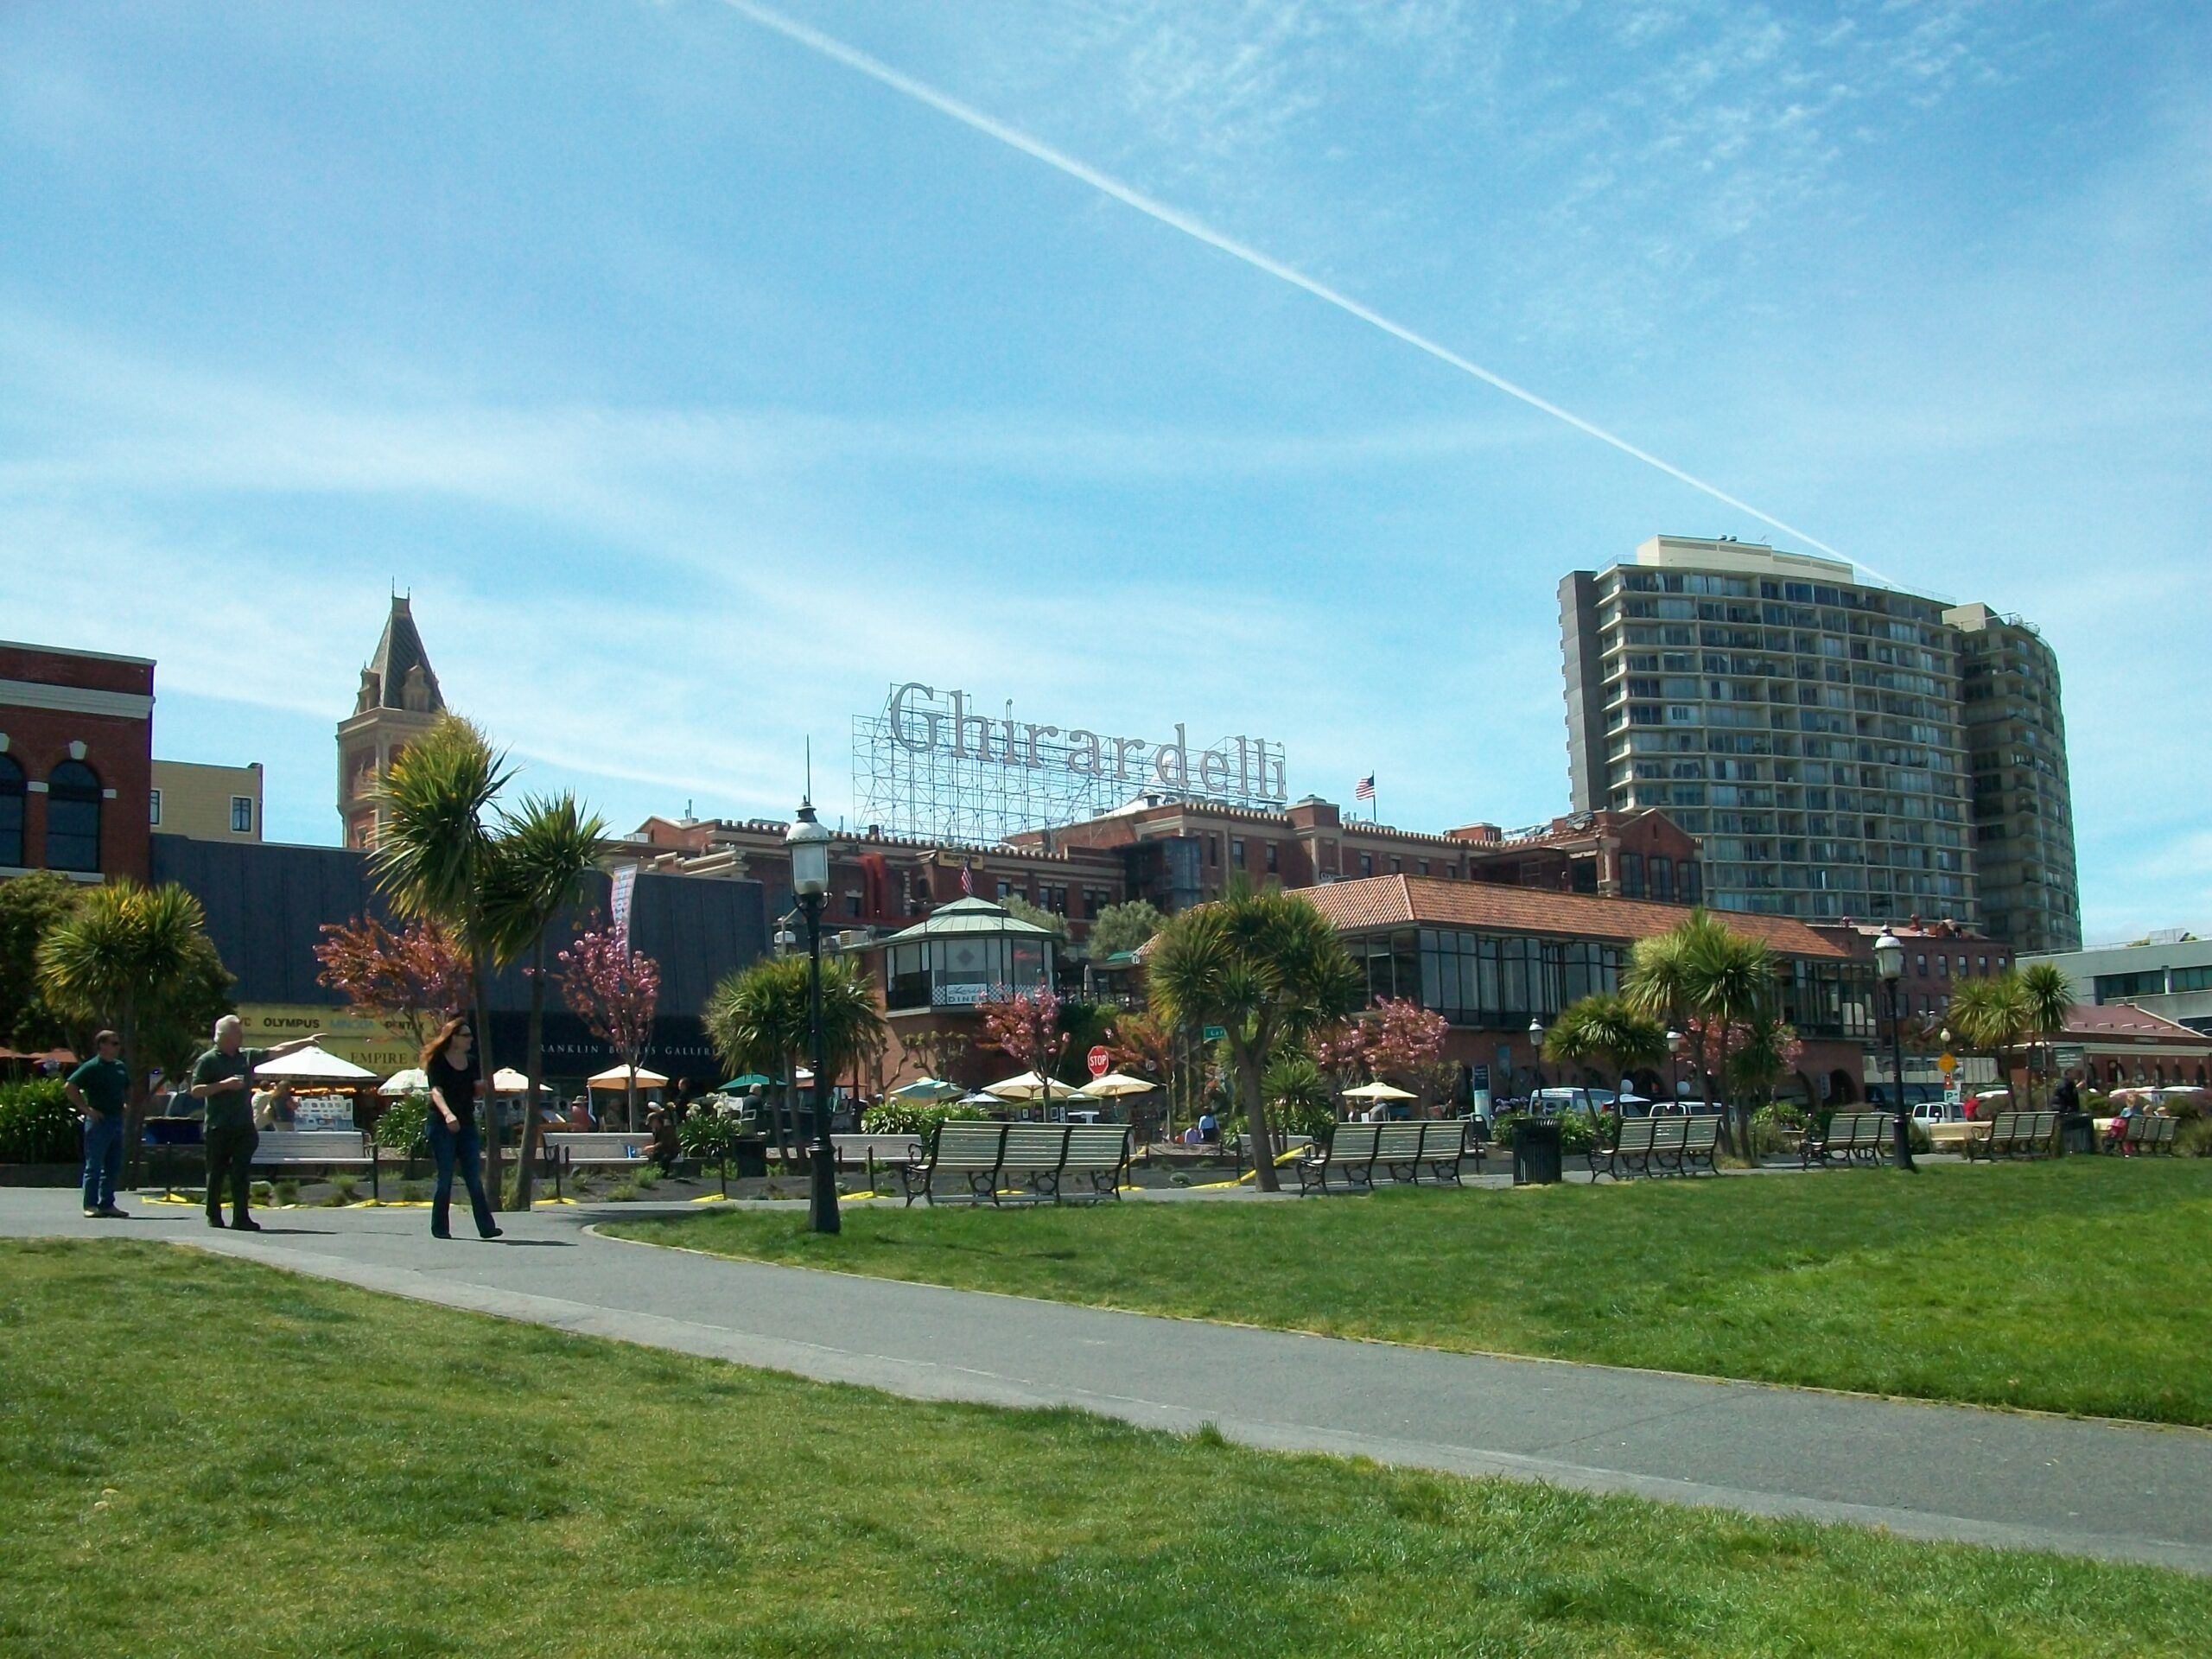 Ghirardelli Square in San Francisco, California